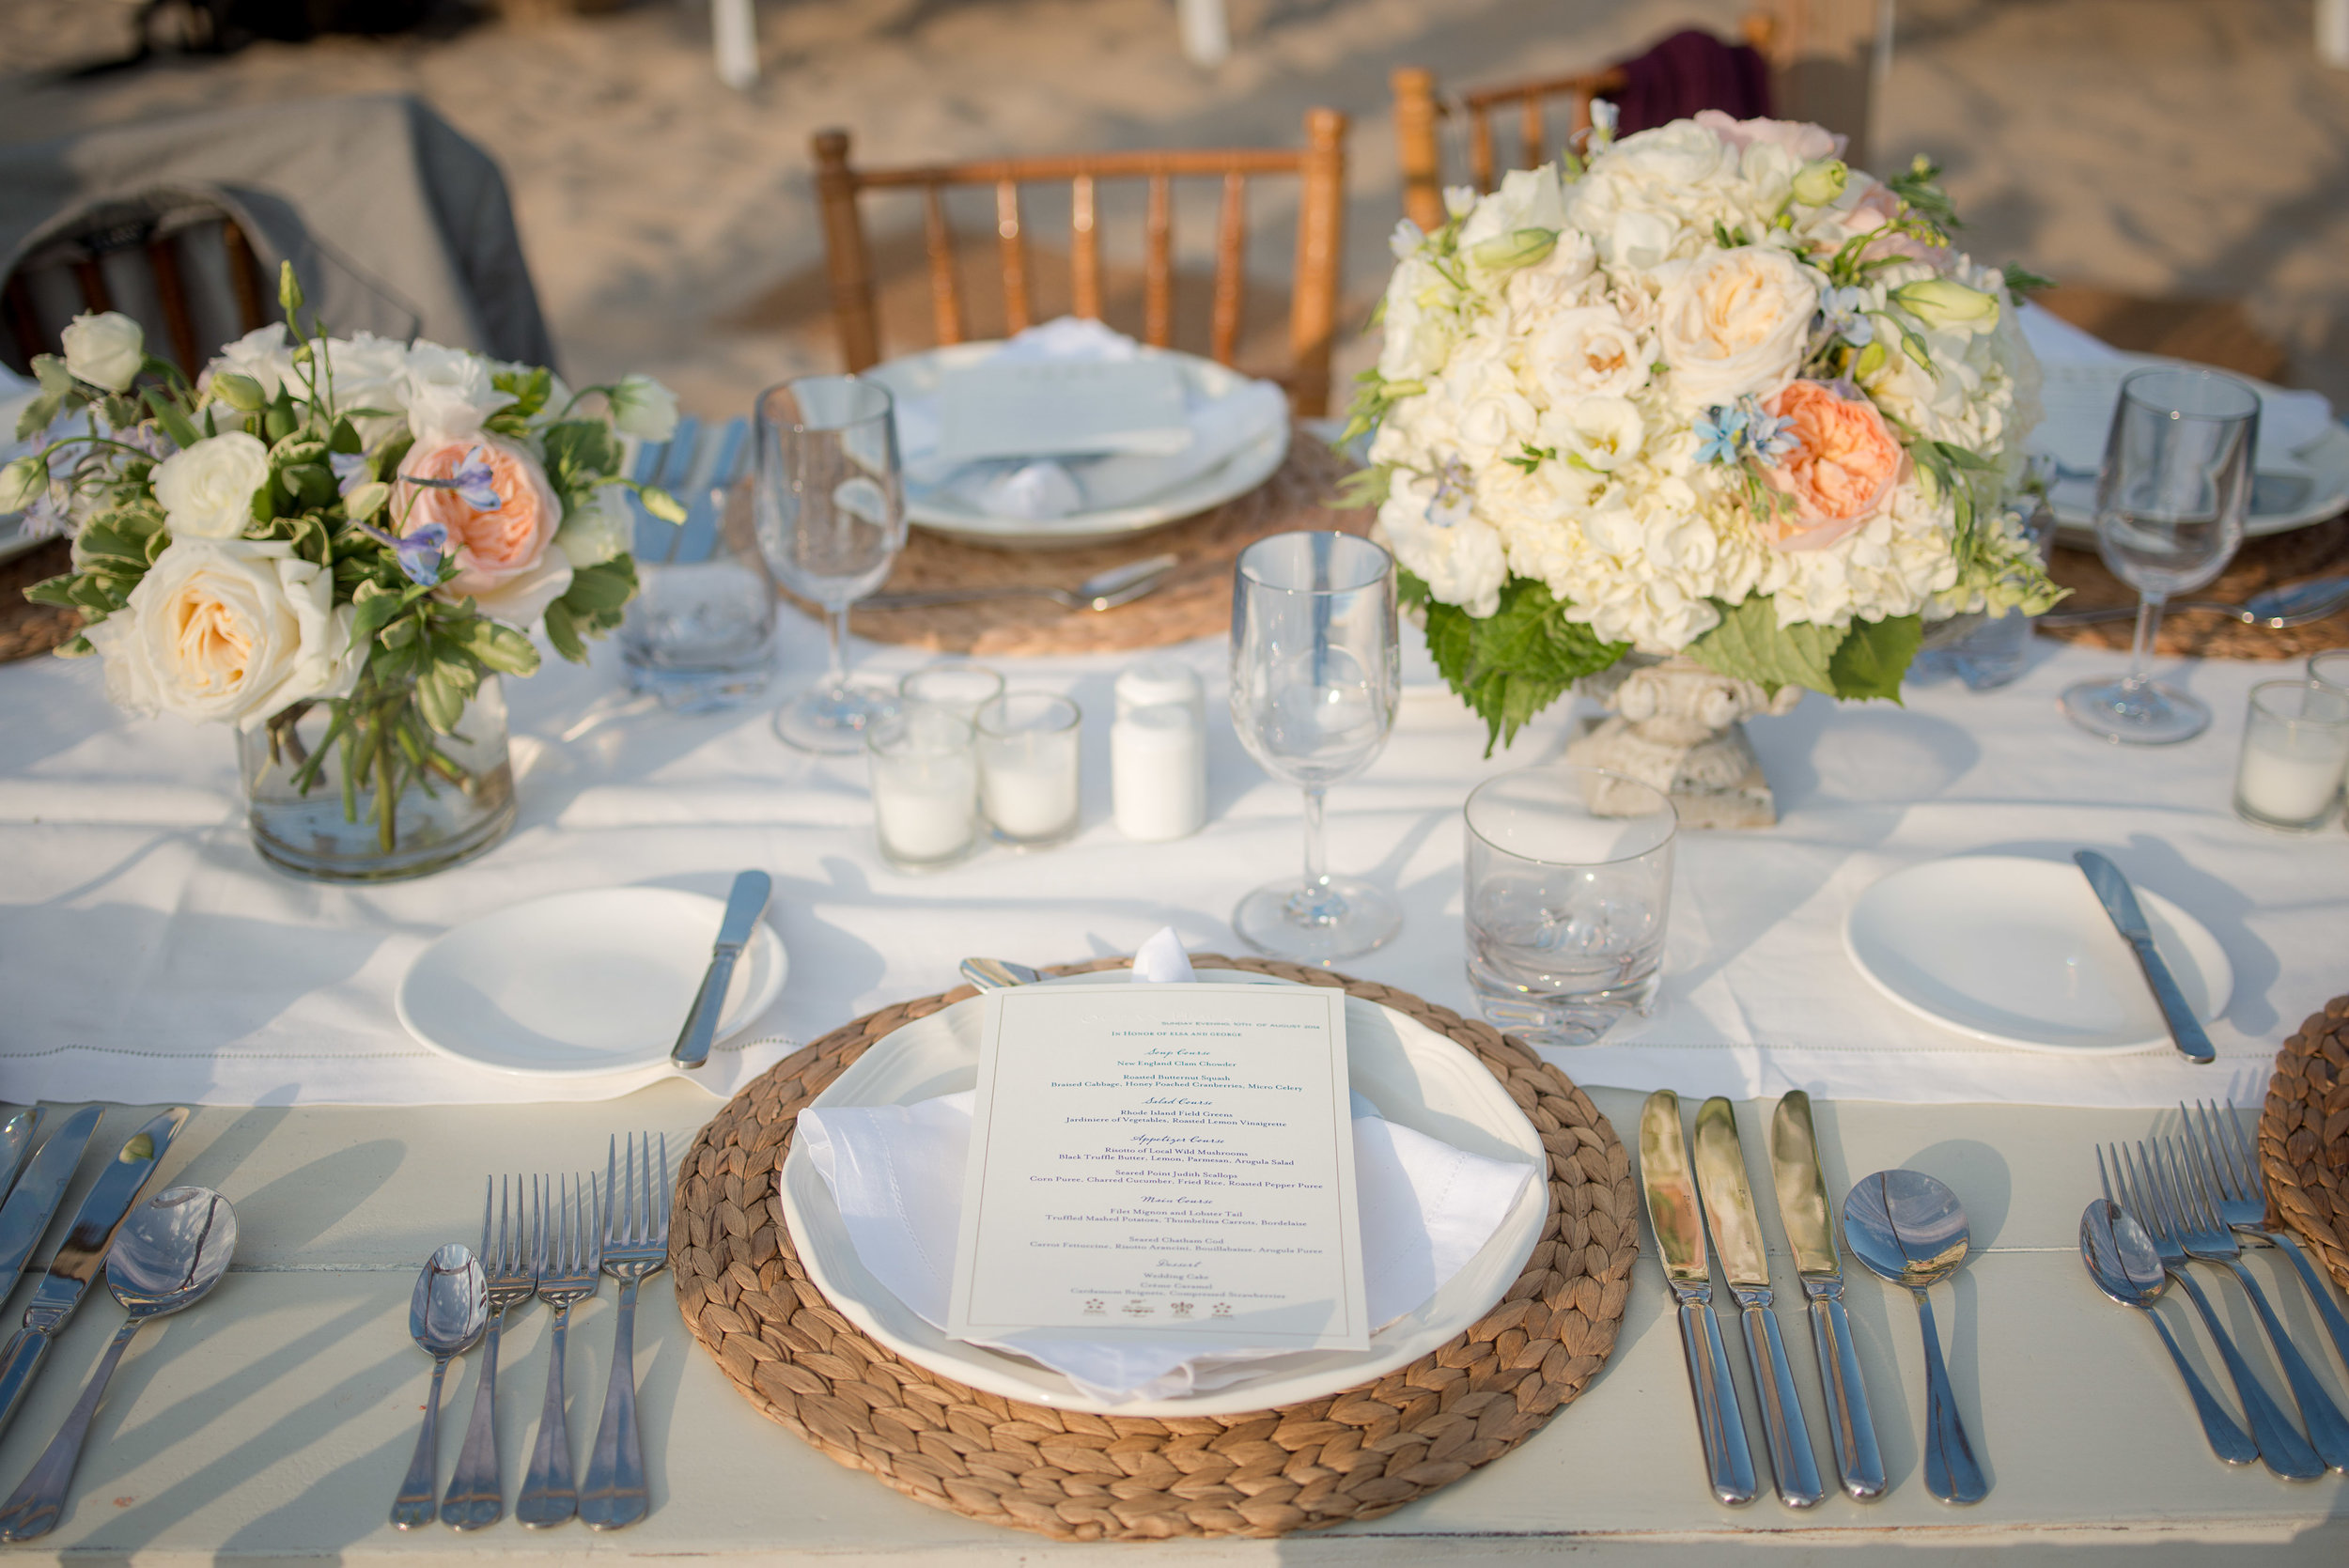 Hana Floral Design with Ashley Douglass Events, wedding planner at the Ocean House RI in Watch Hill, Rhode Island wedding